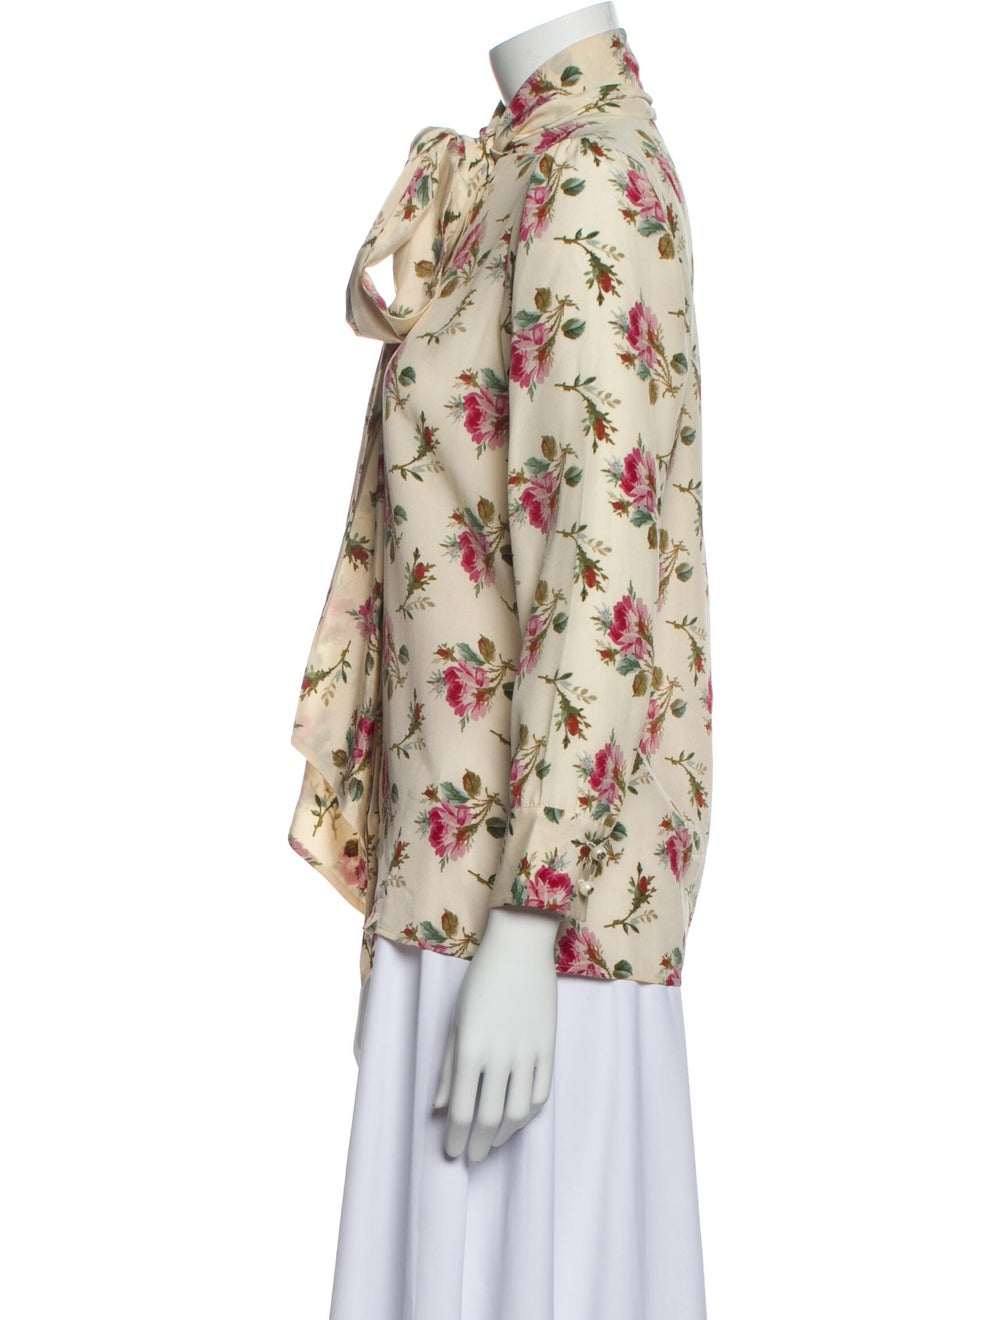 Gucci 2017 Floral Print Silk Blouse w/ Tags - image 2